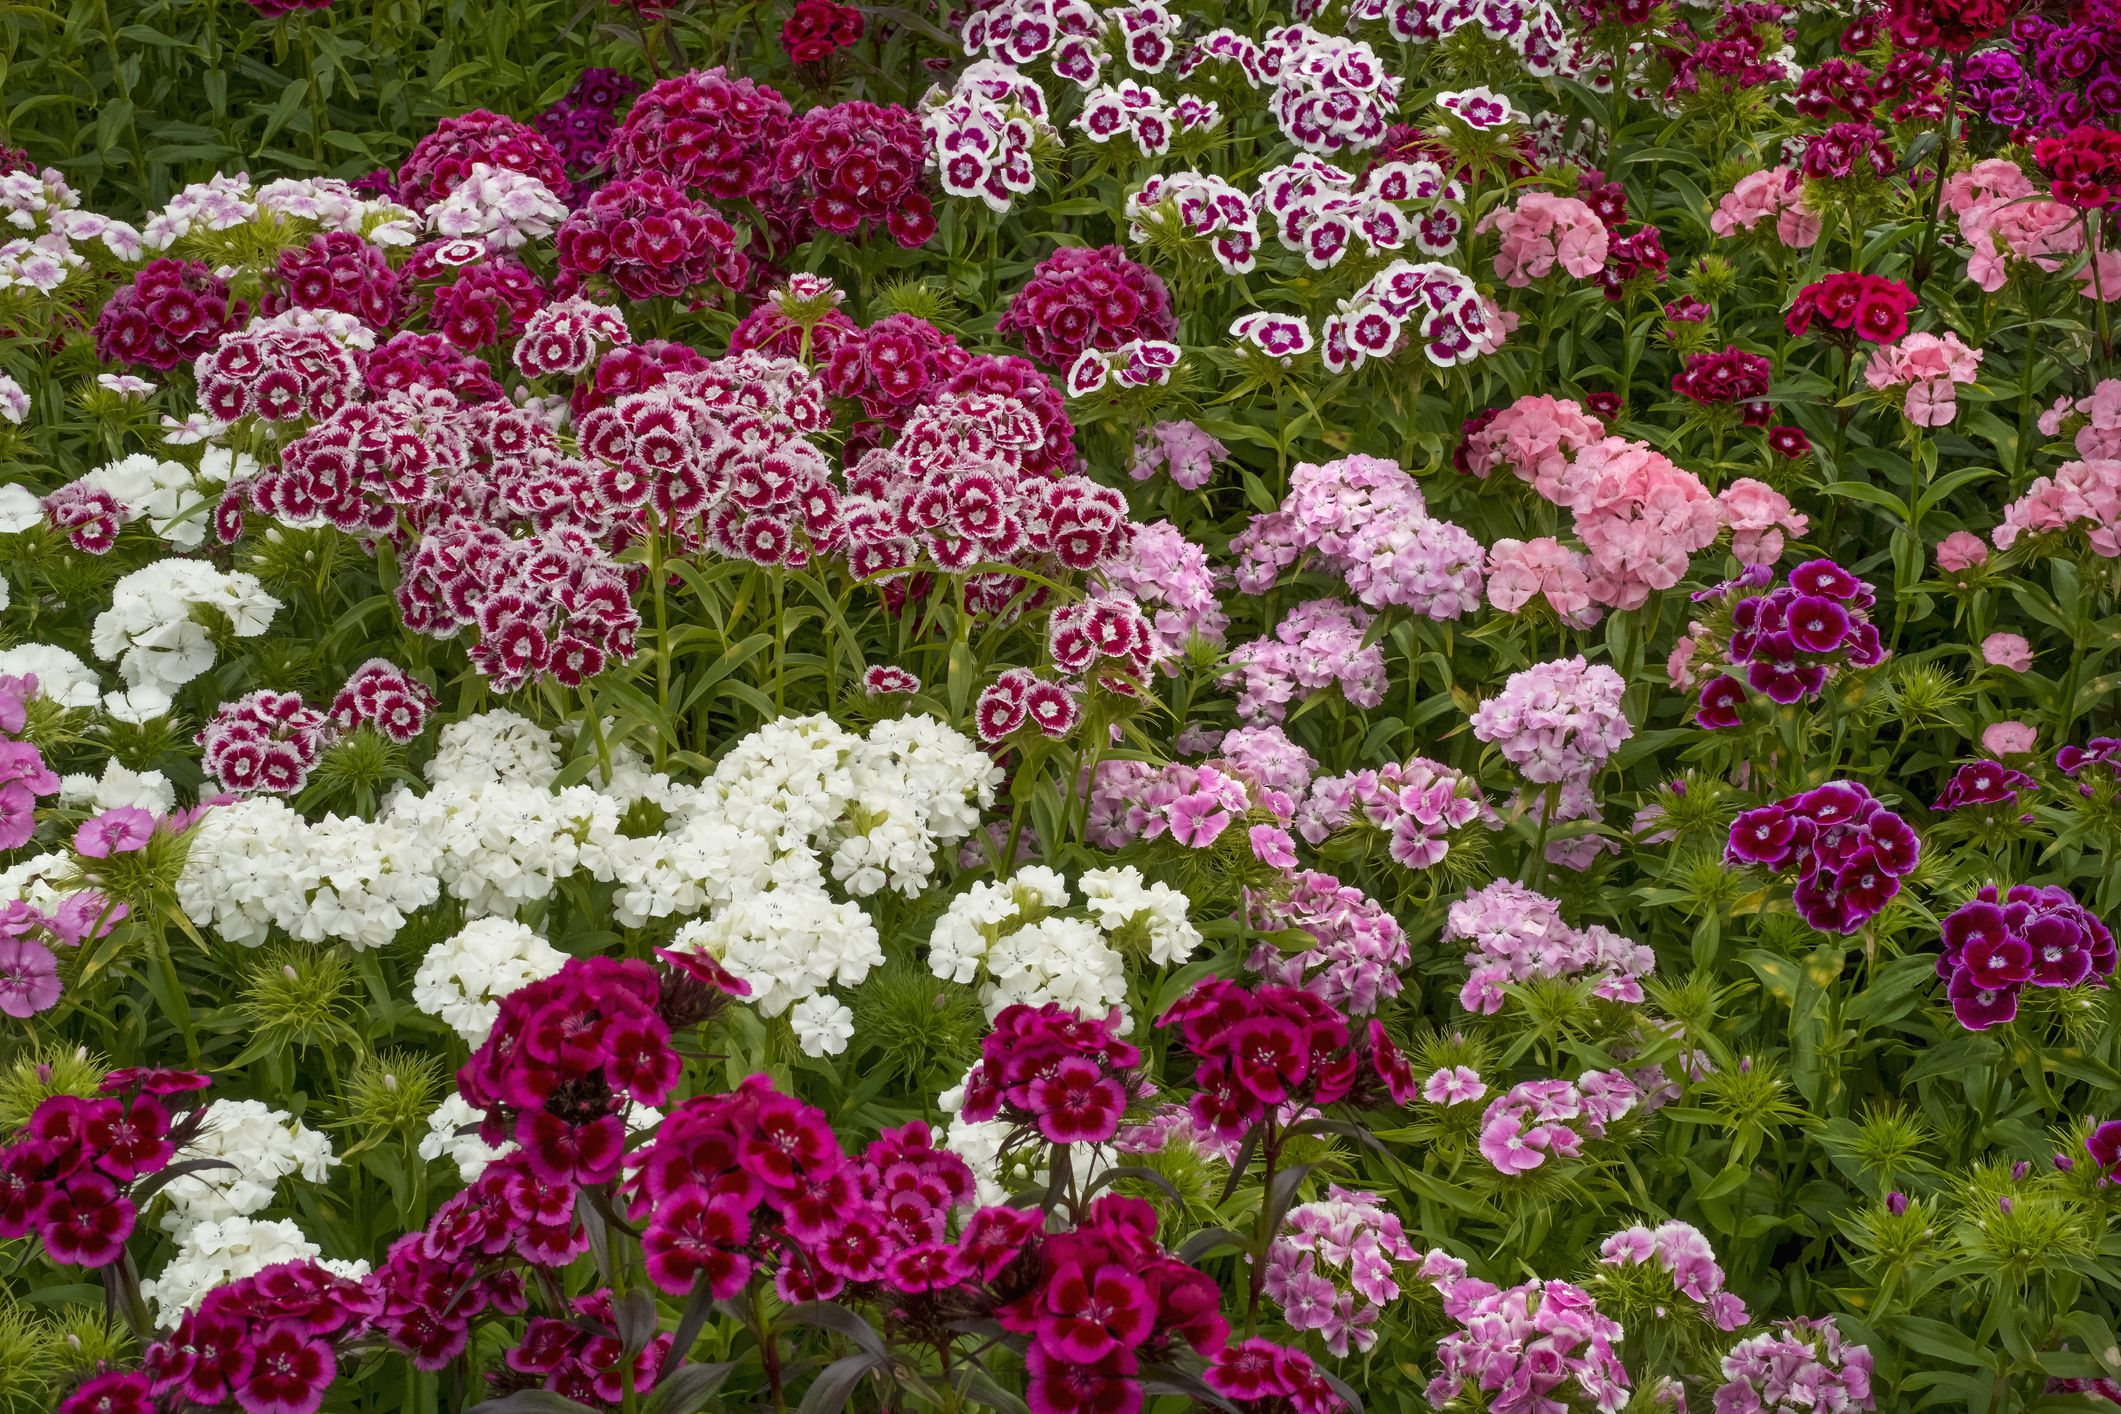 The Perennial Dianthus Flower